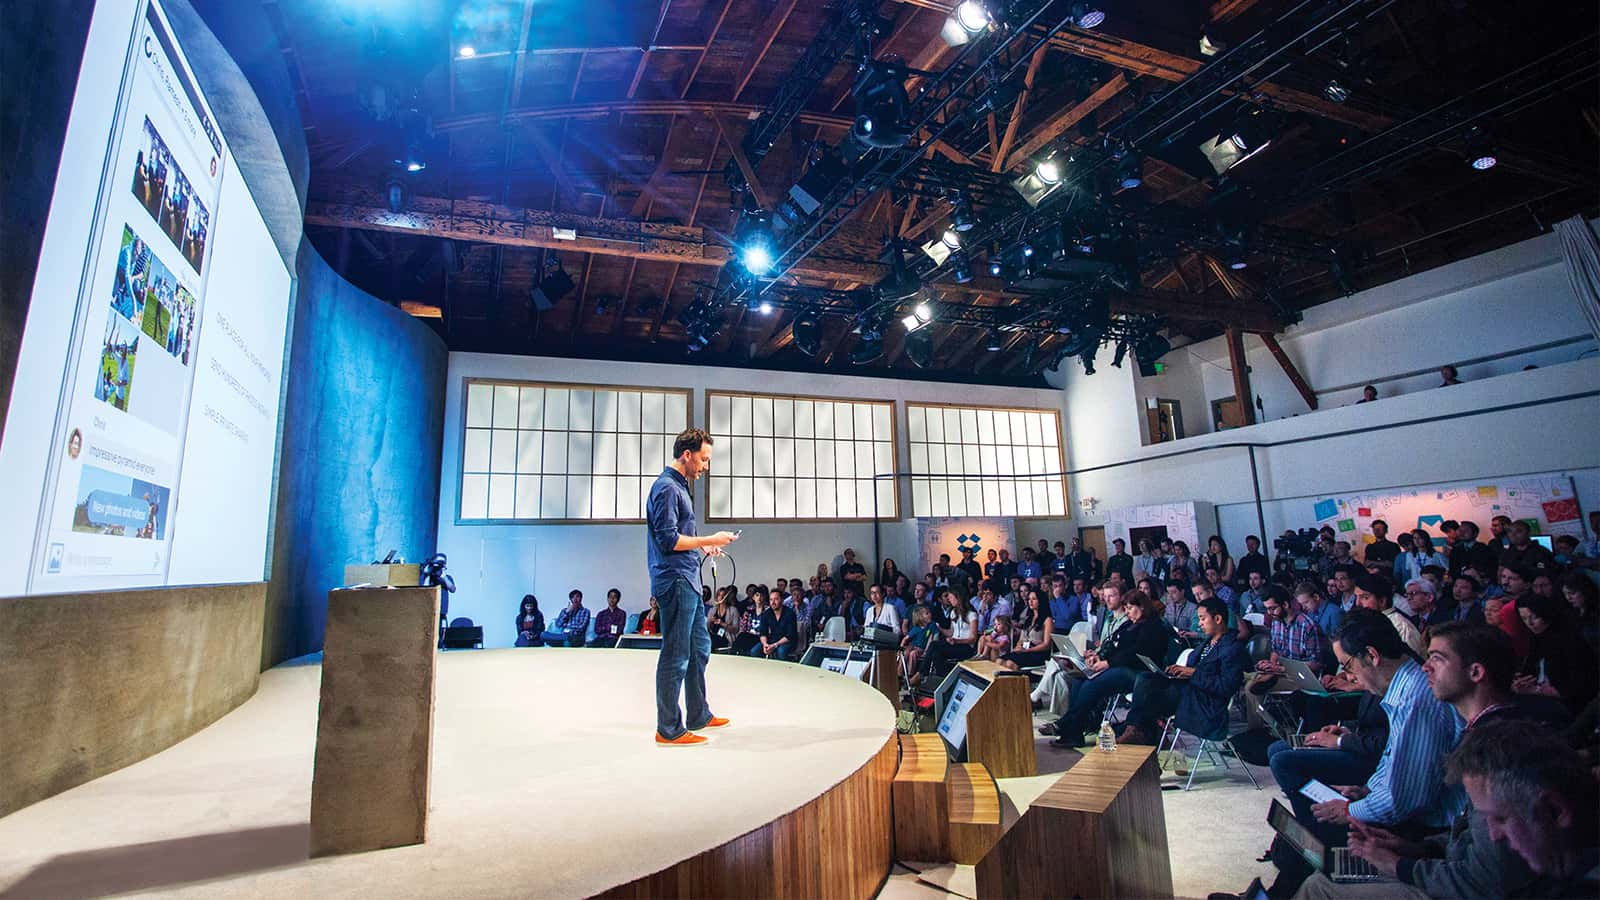 CEO, Drew Houston on stage at Dropbox 4.09 press event at Dogpatch Studios, San Francisco in 2014.